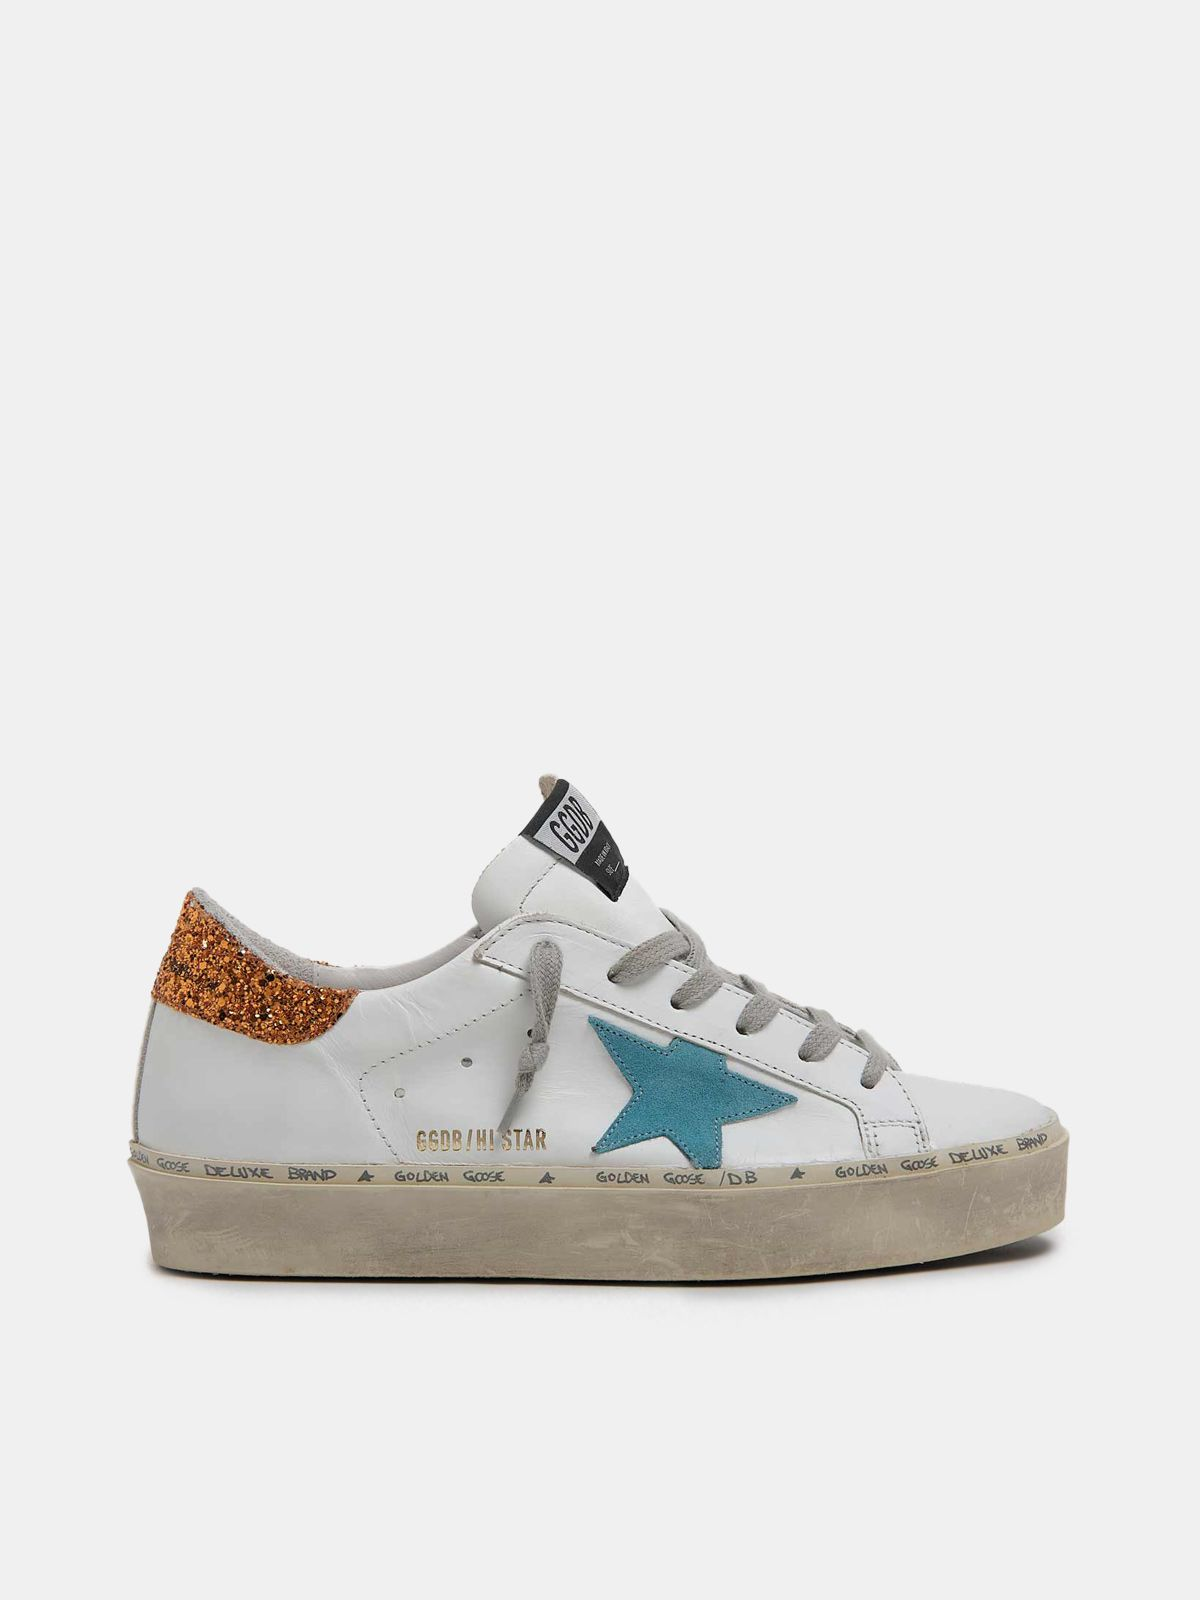 White Hi-Star sneakers with sky-blue star and glittery heel tab